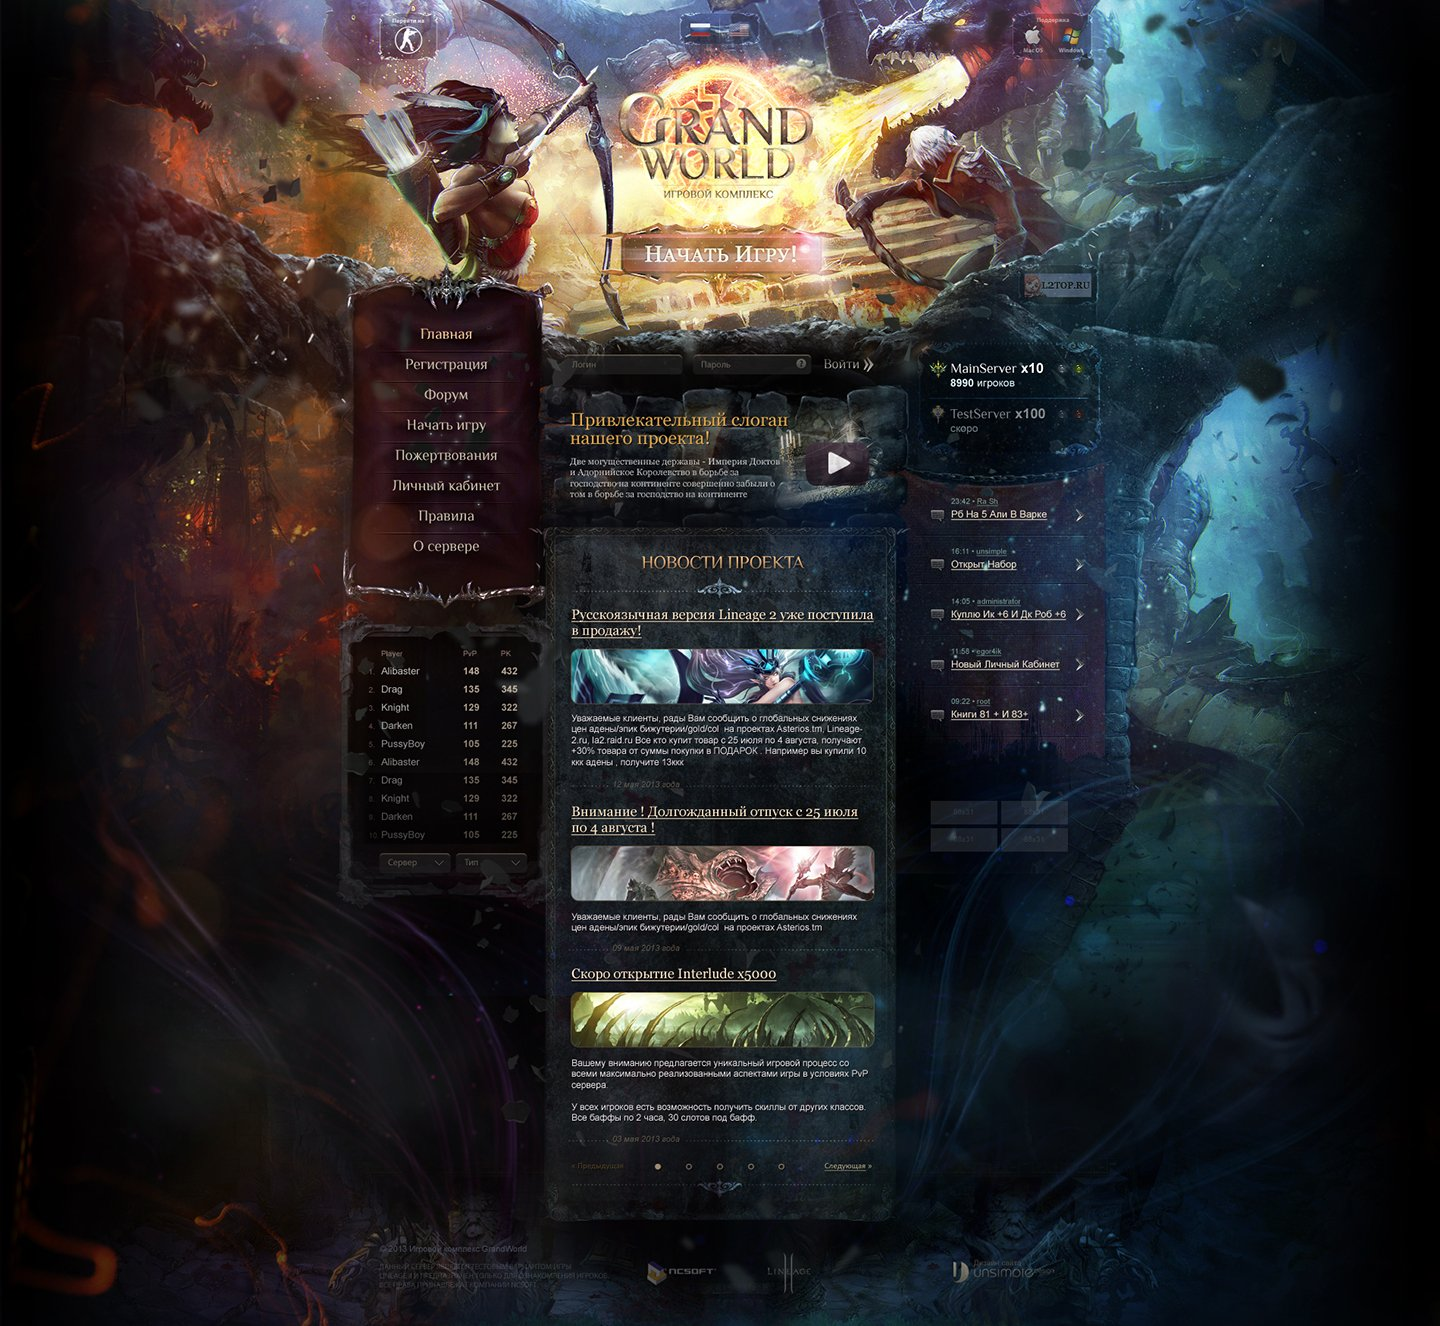 GrandWorld > Website for Lineage 2 private server. Main page